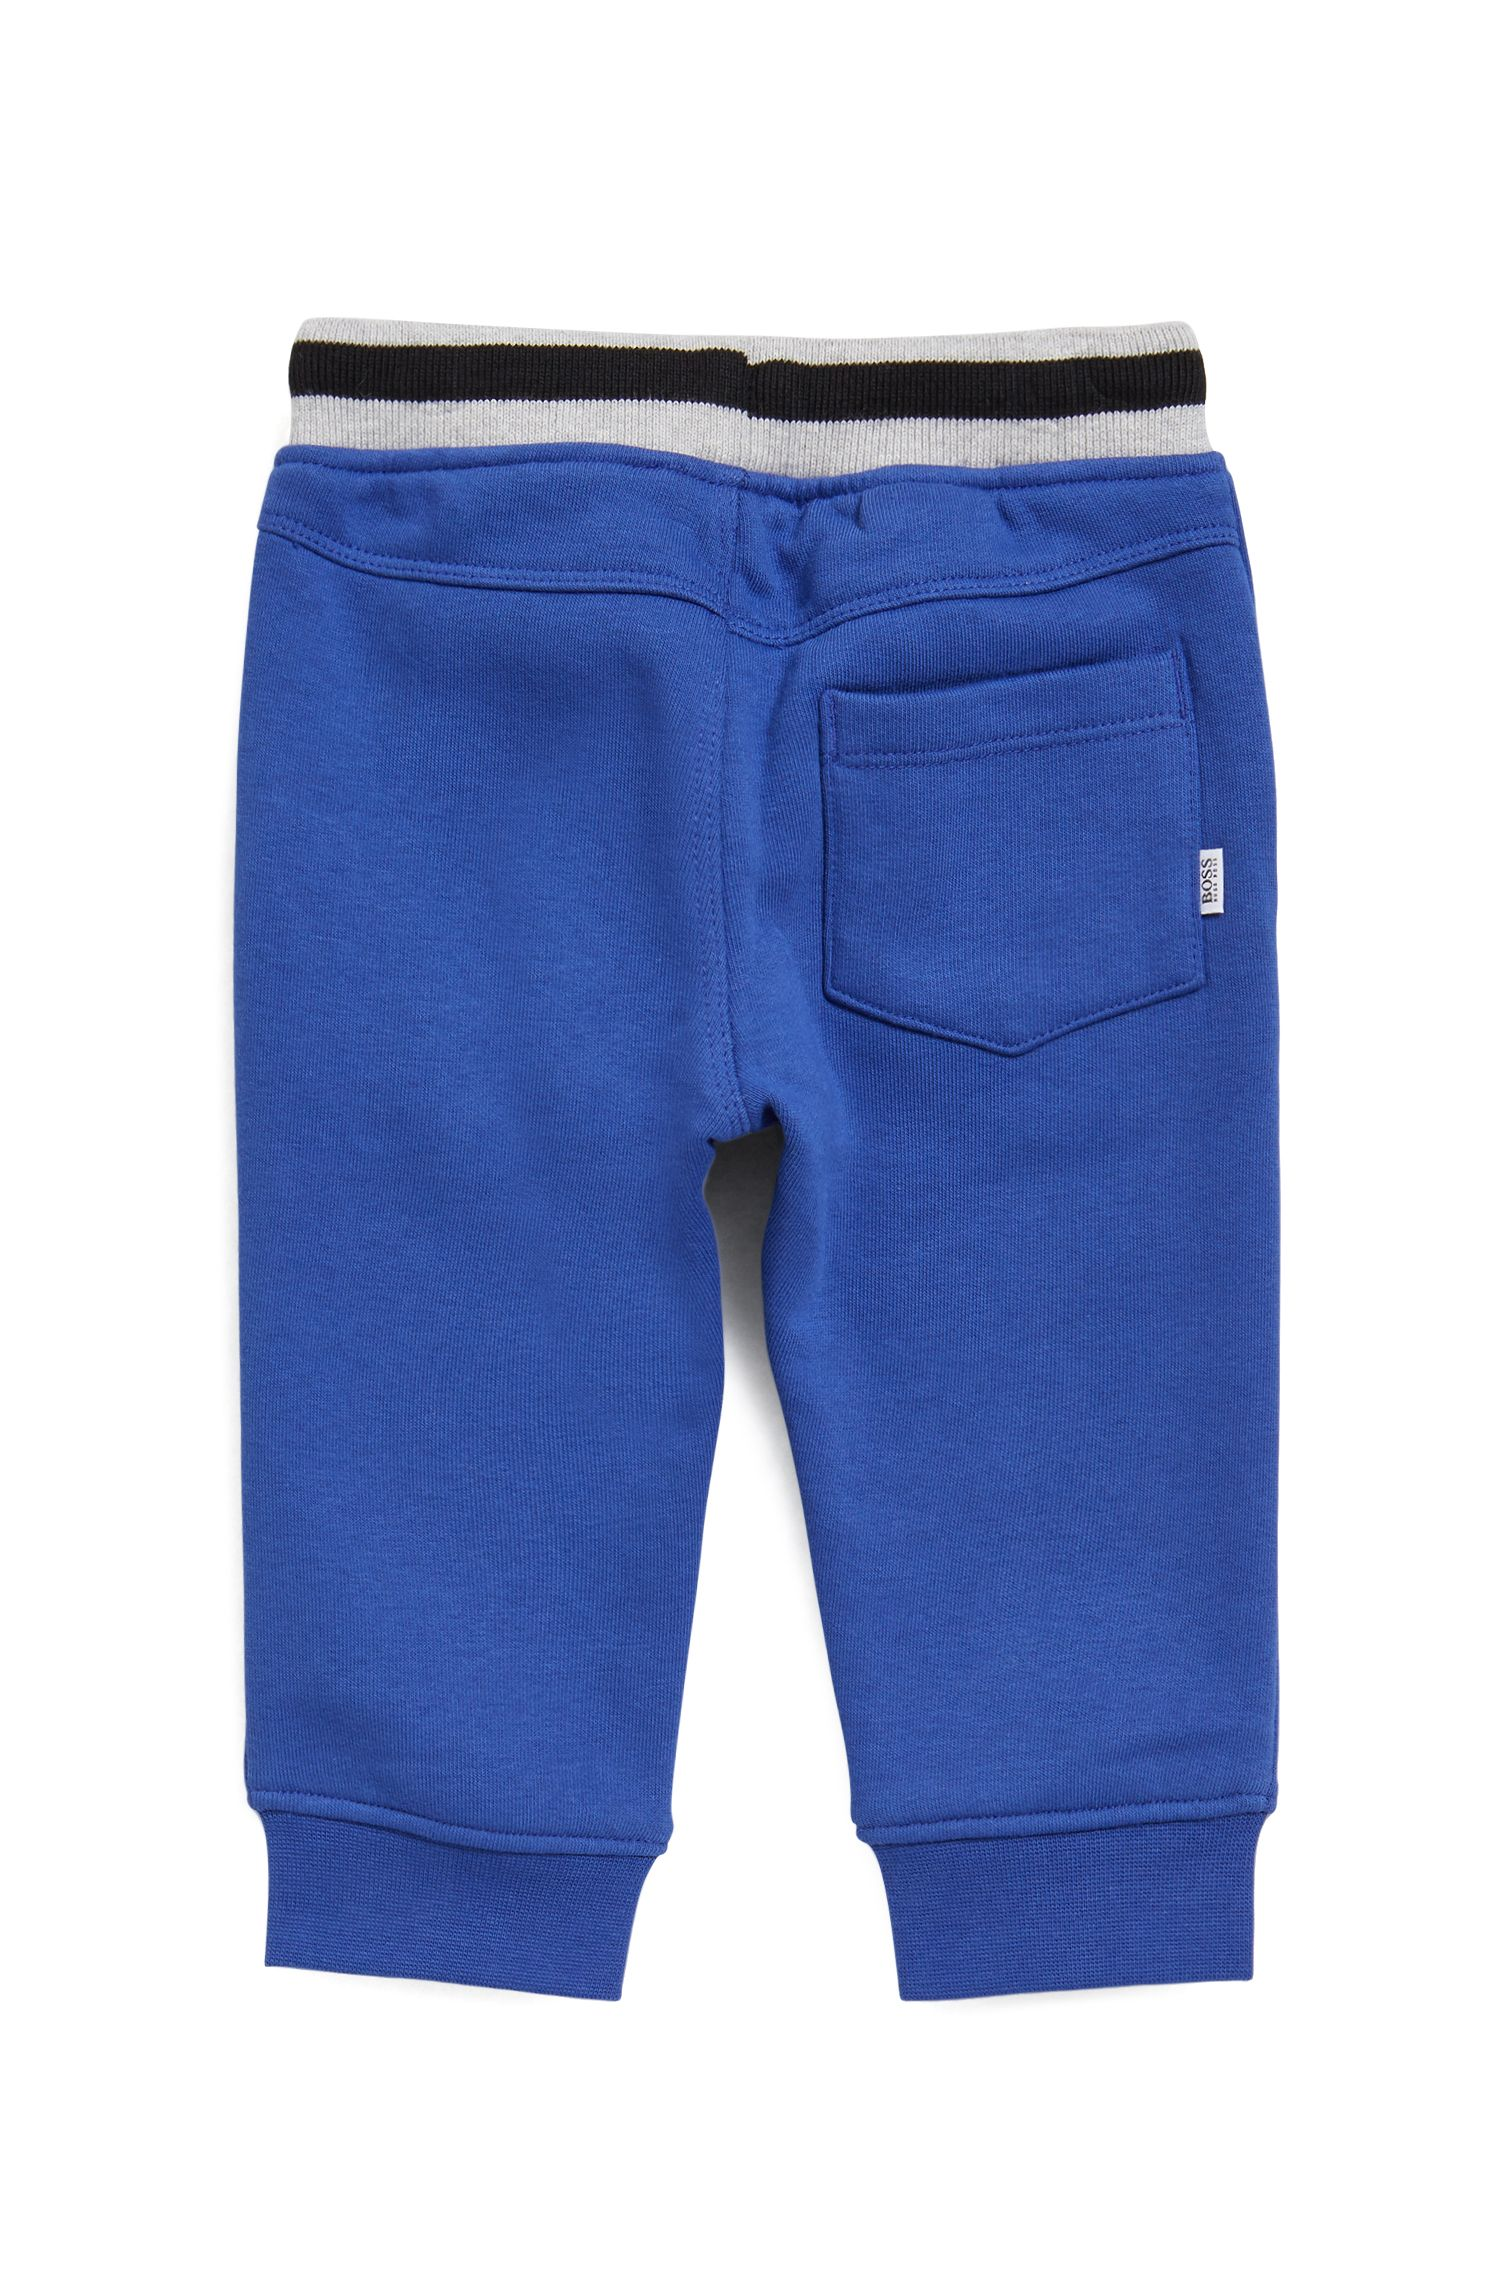 Kids' jogging bottoms in French terry